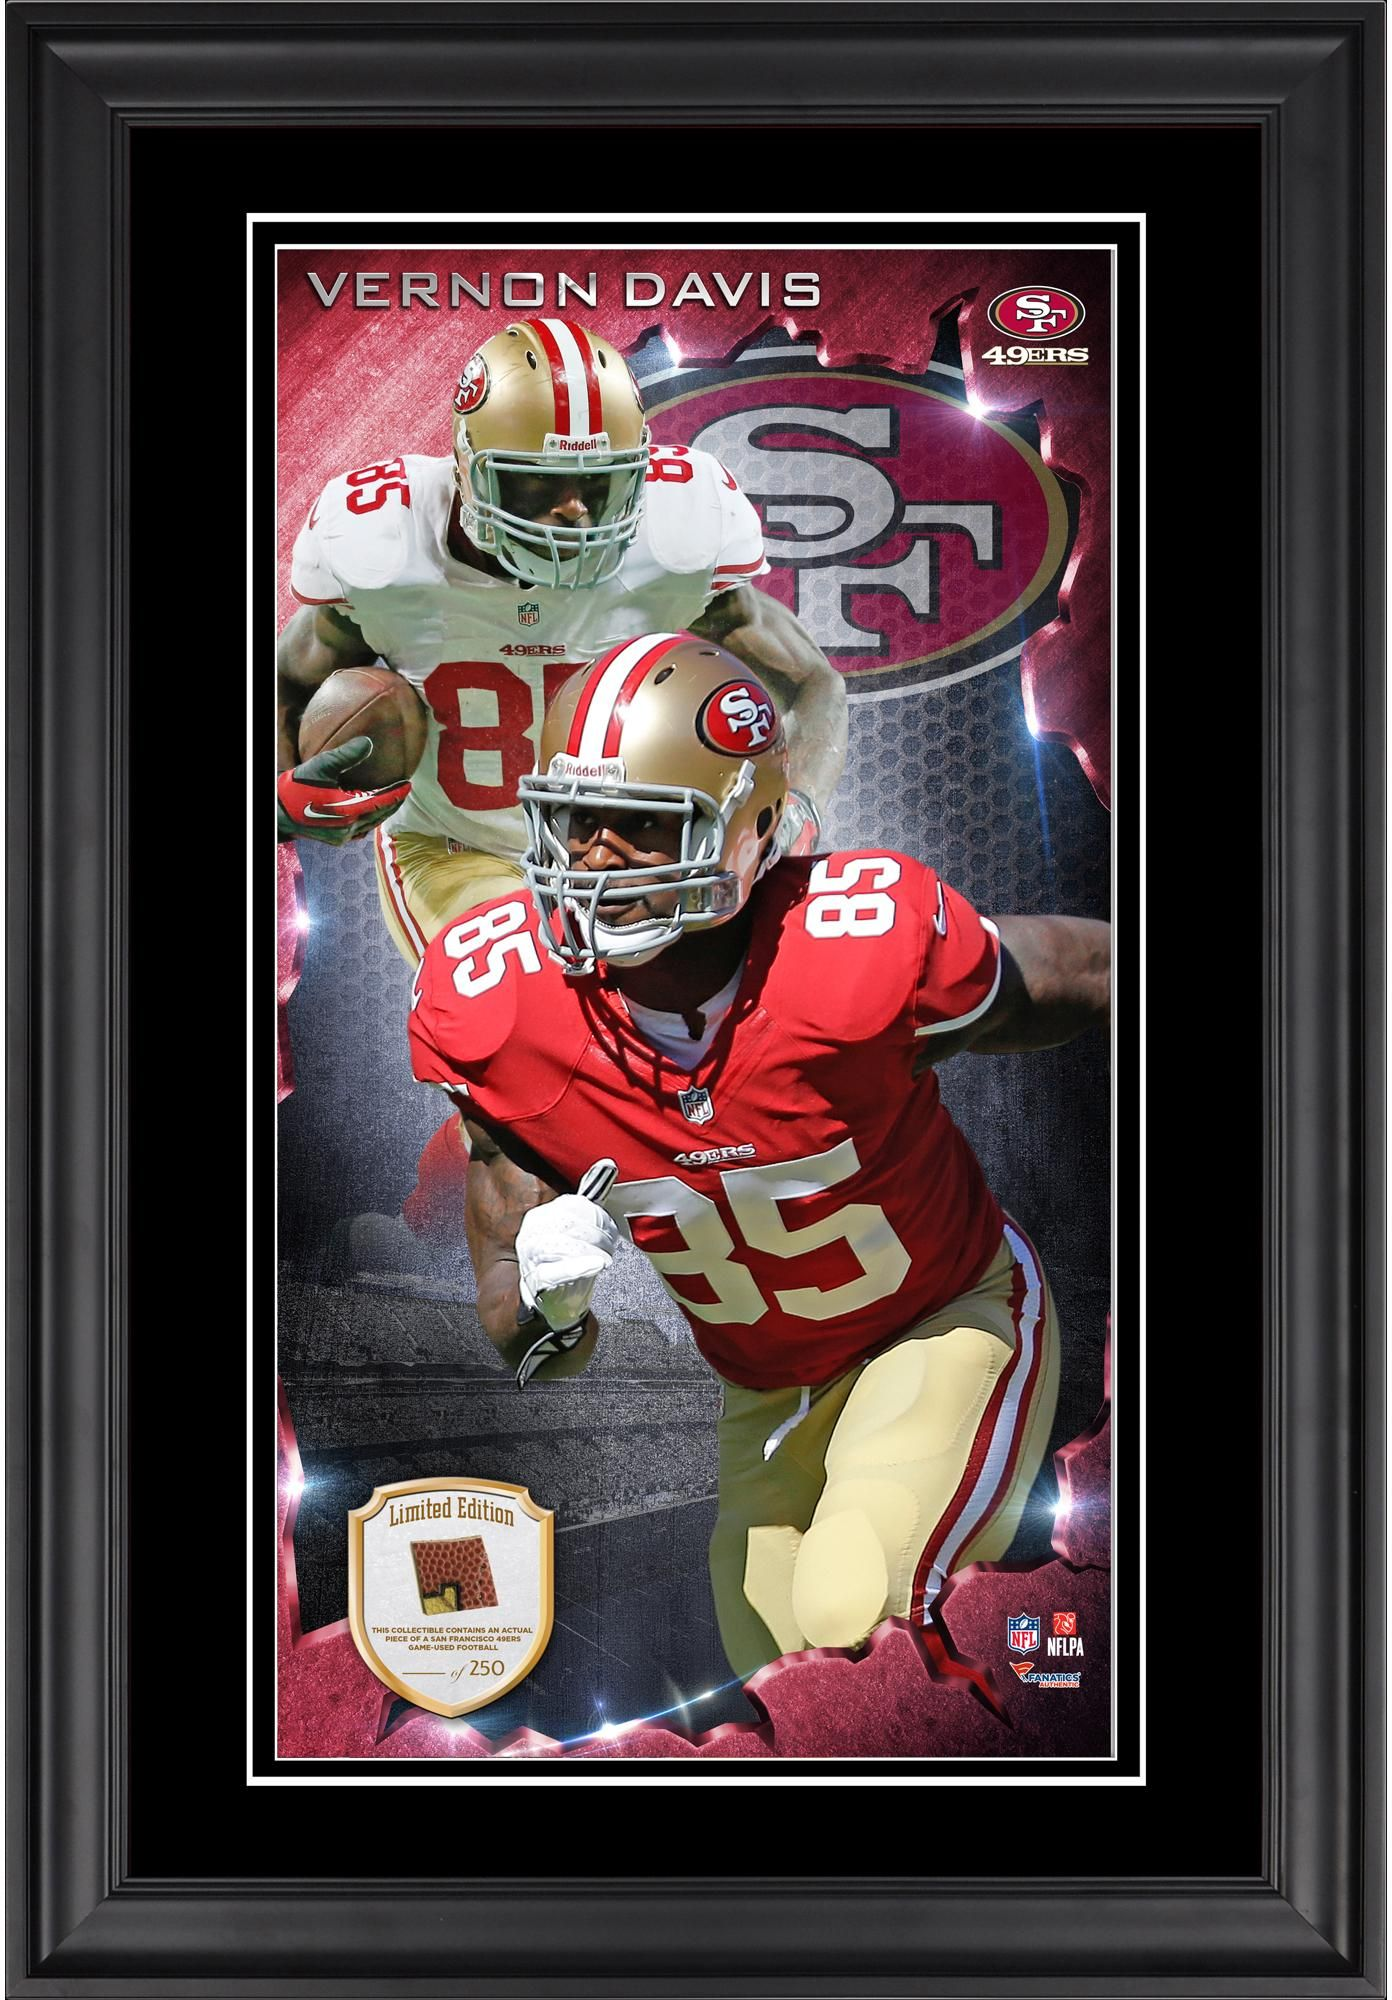 417ddac08 Vernon Davis San Francisco 49ers 10   x 18   Vertical Framed Photograph  with Piece of Game-Used Football - Limited Edition of 250